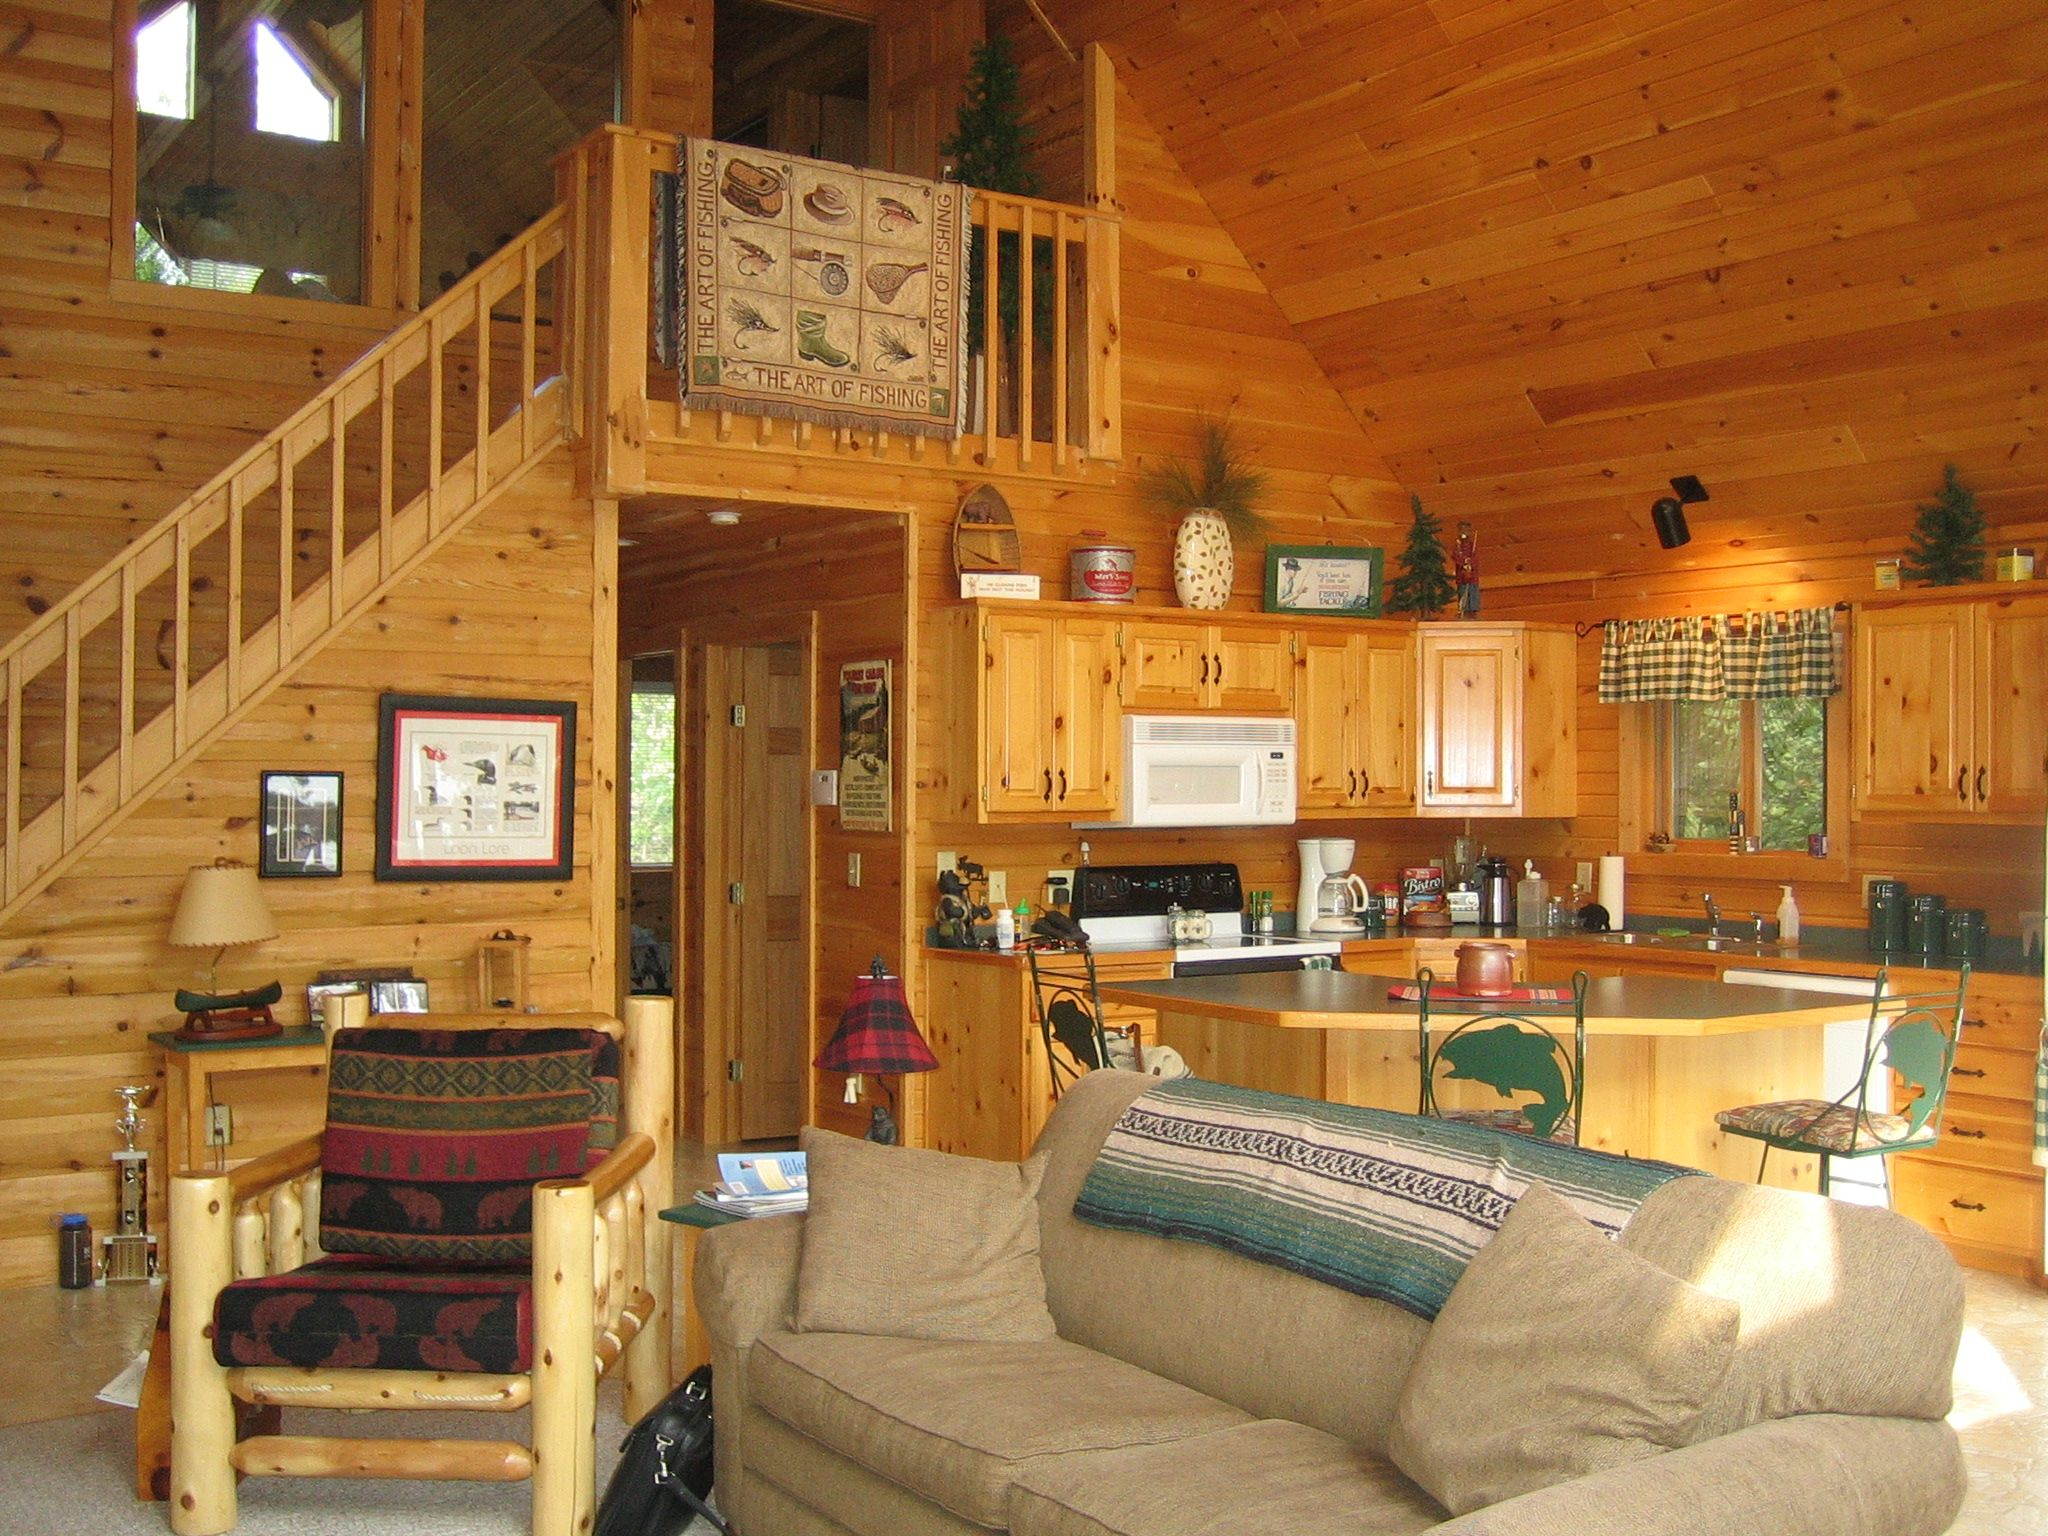 interior cabins home decor cabin loft loft interior design ideas small cabin design ideas - Small Cabin Interior Design Ideas